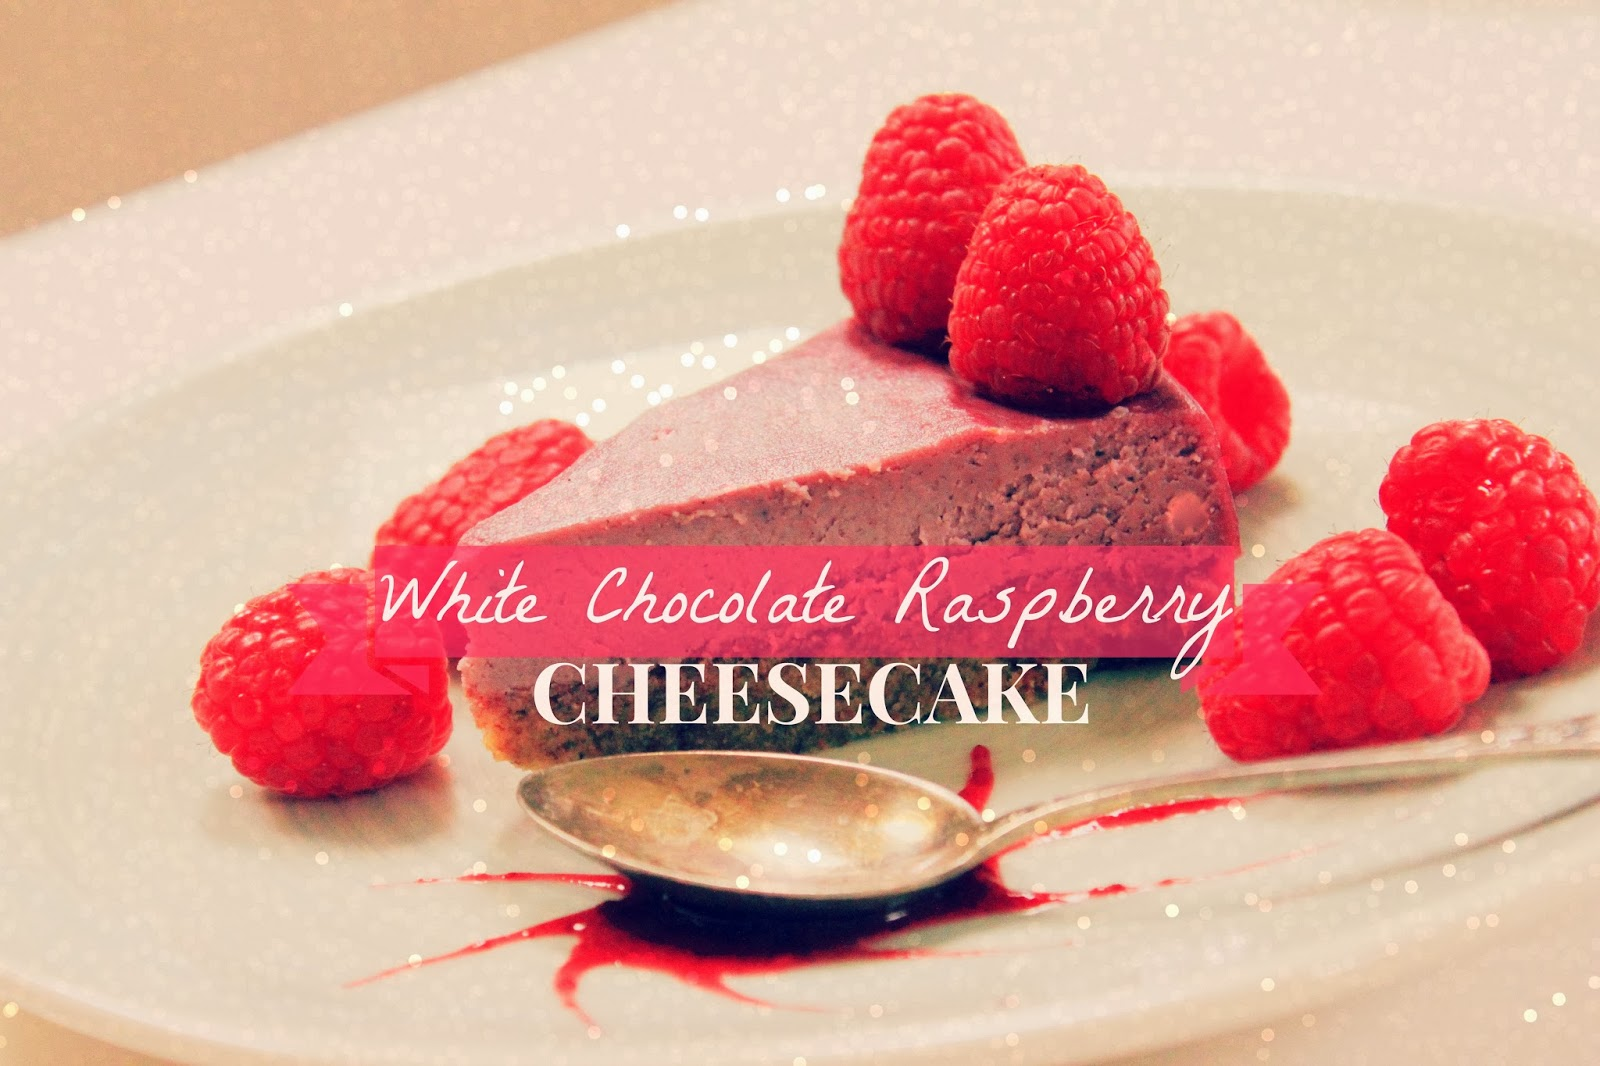 Raw Strawberry White Chocolate Cheesecake Recipe Grain free, Dairy free